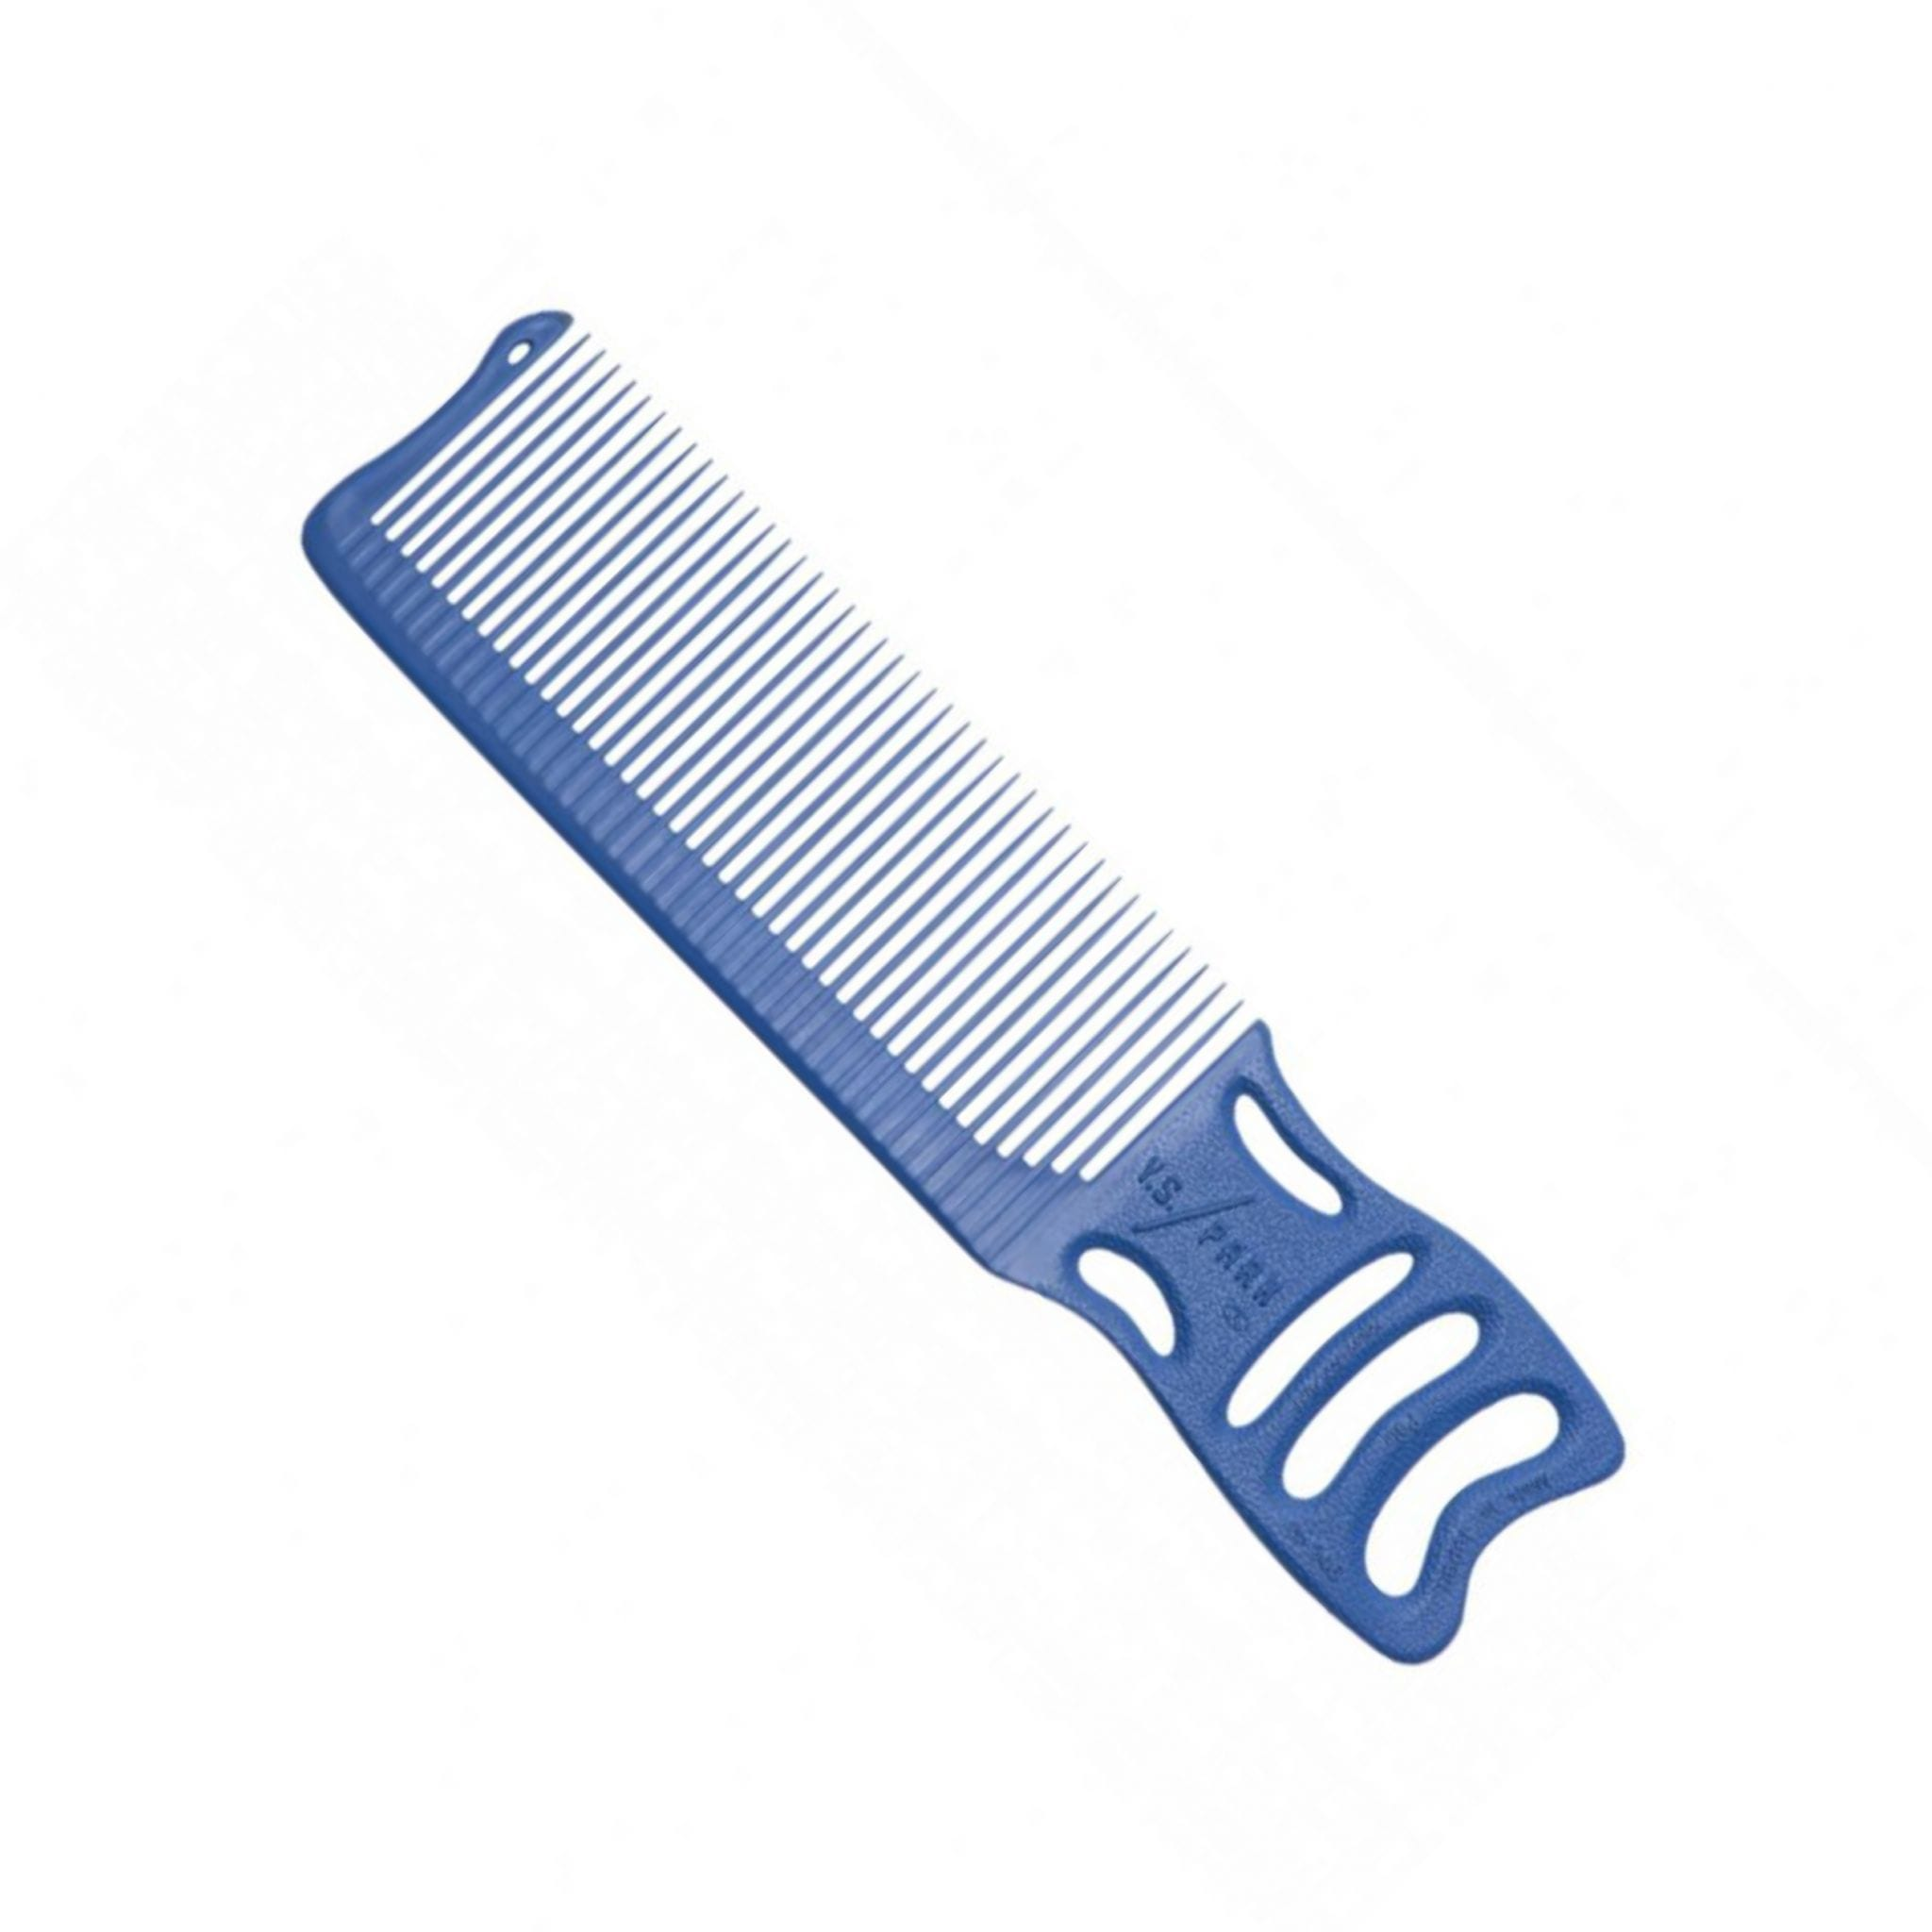 Fejic 273 Carbon Fibre Combs Made in Japan 190mm Heat Resistant